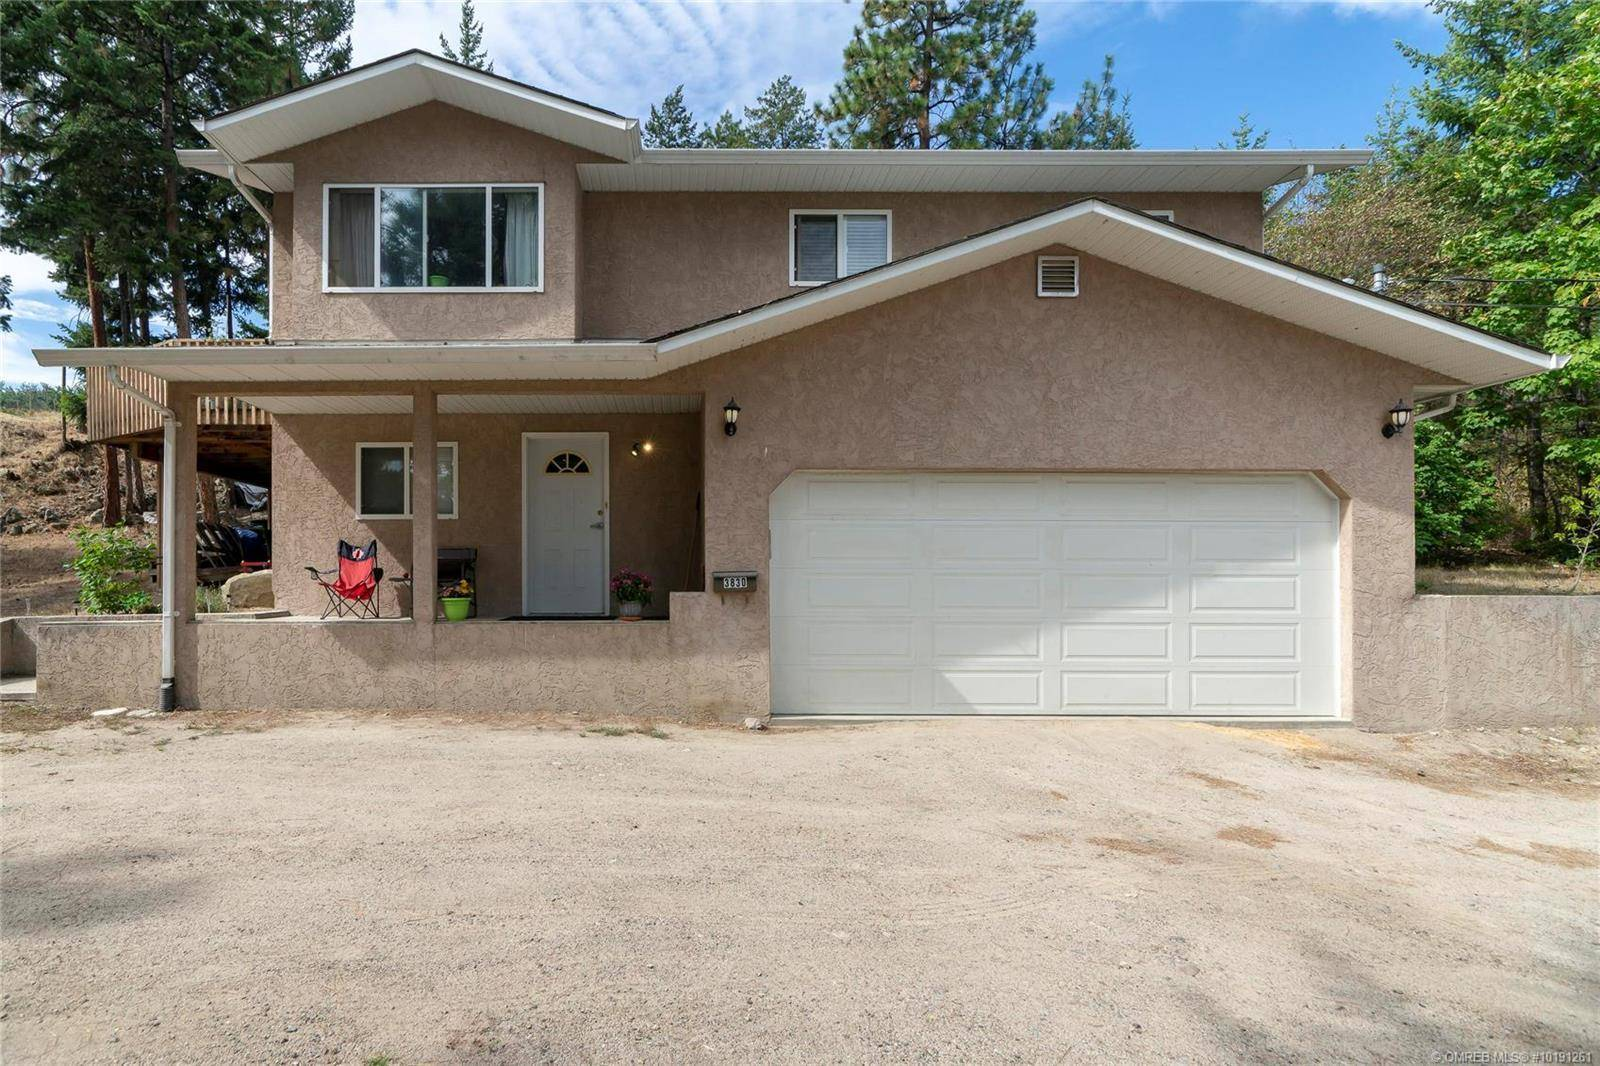 House for sale at 3830 Gellatly Rd South West Kelowna British Columbia - MLS: 10191261